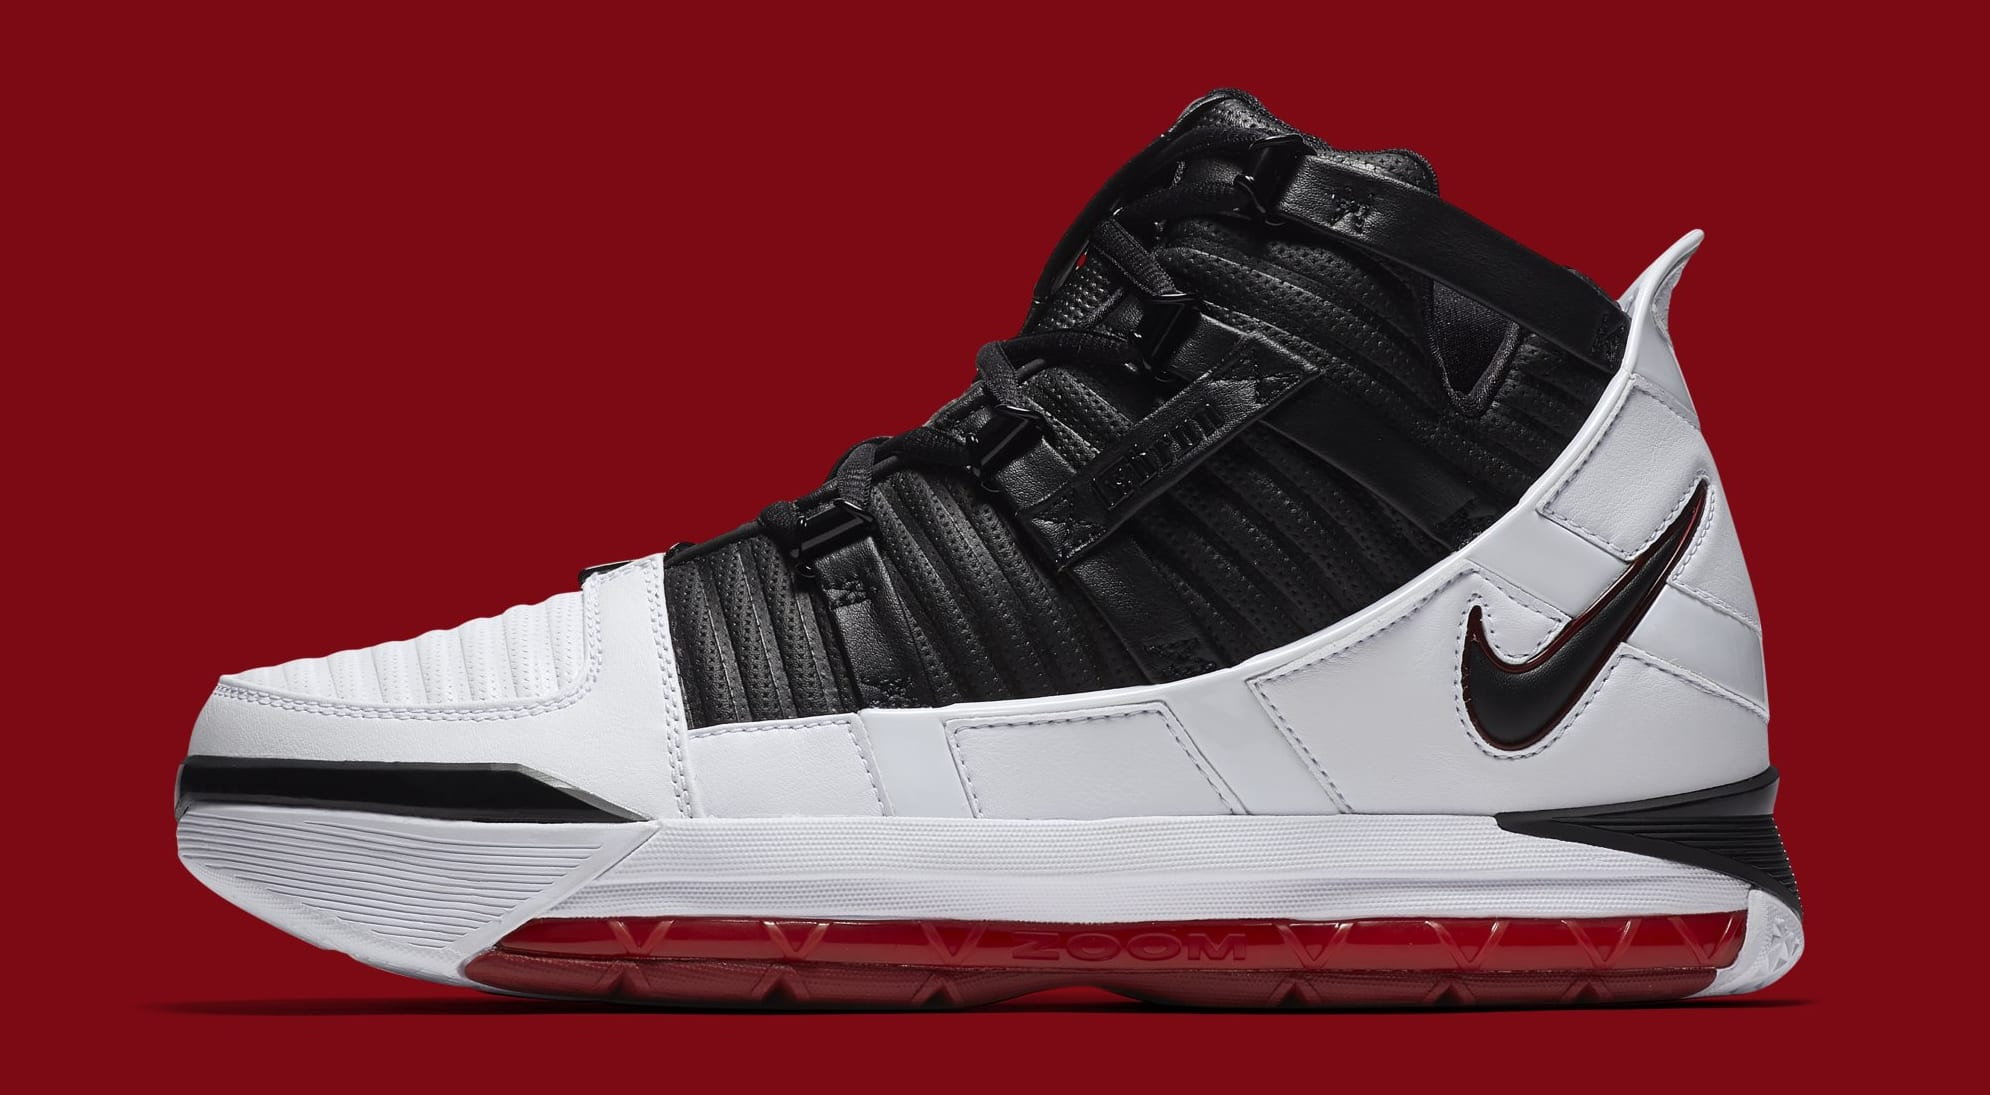 Nike Zoom LeBron 3 'Home' AO2434-101 (Lateral)